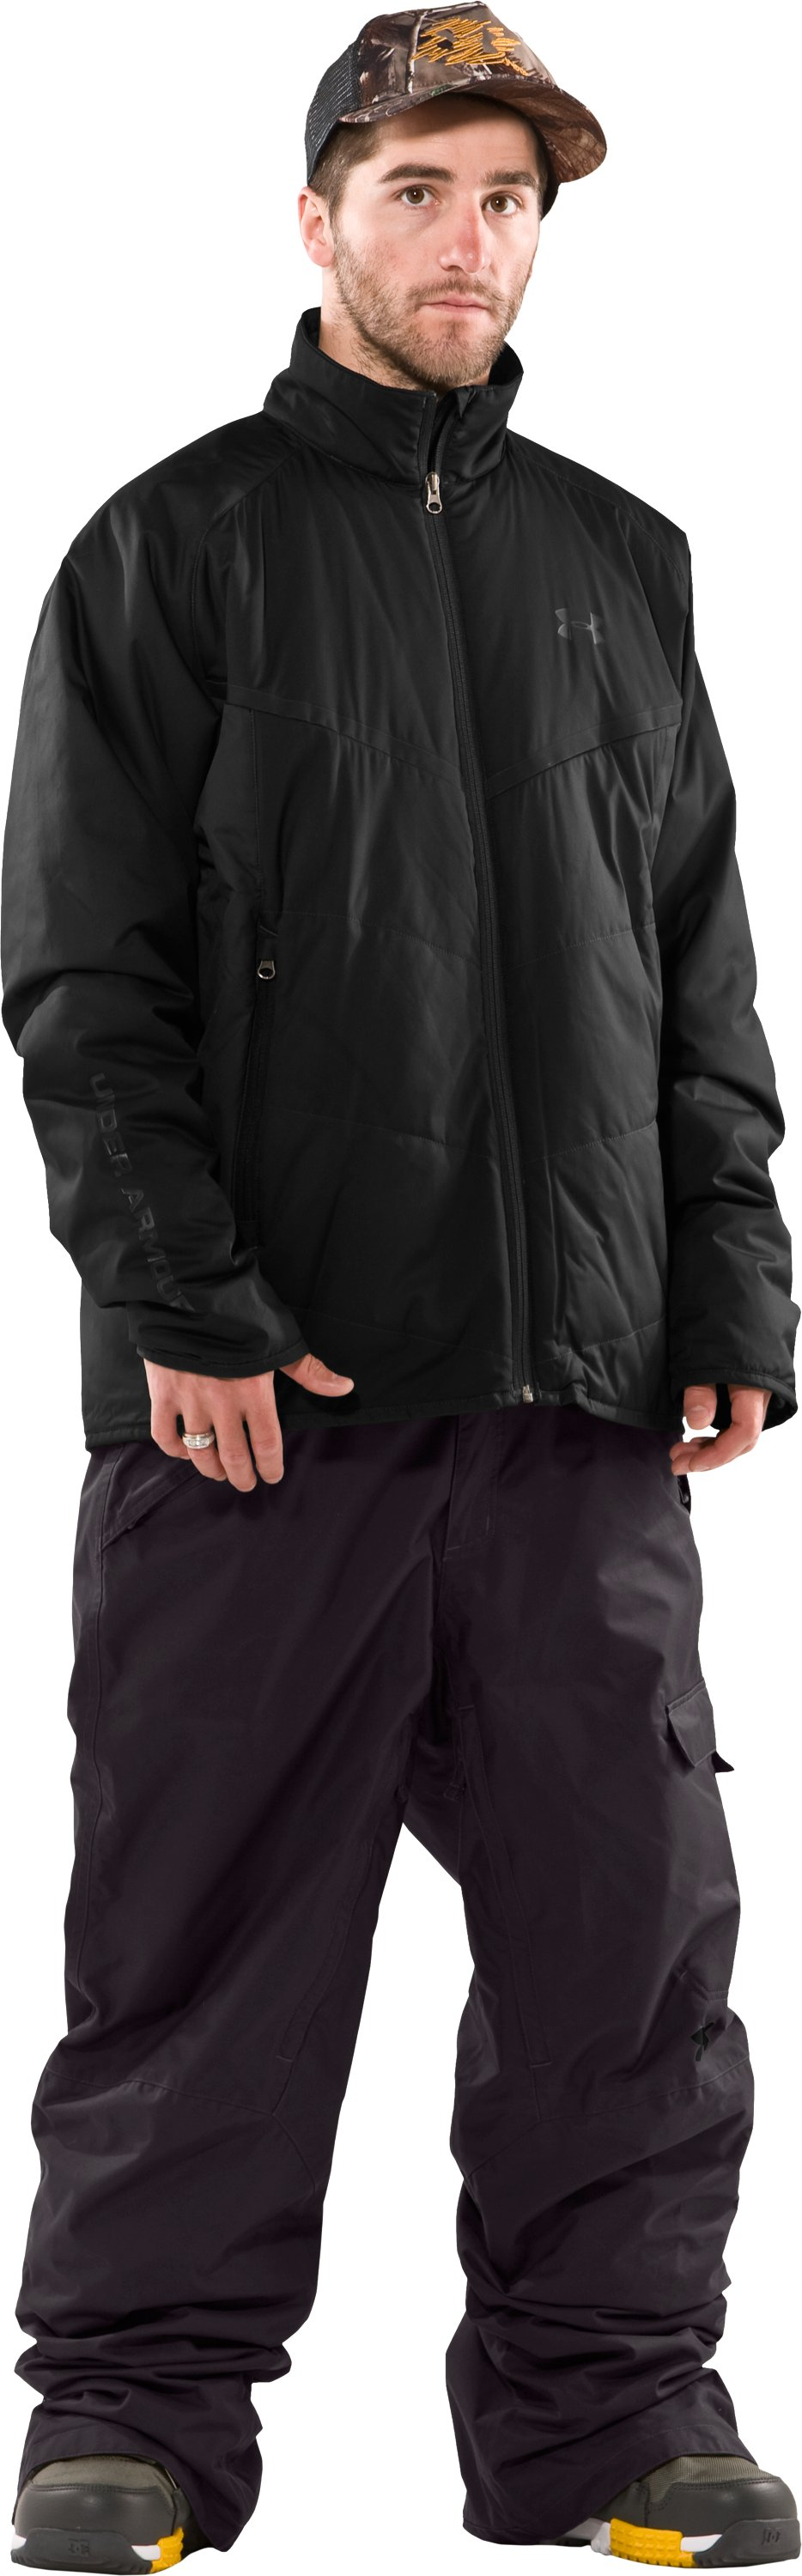 Men's ArmourLoft® Mountain Jacket, Black